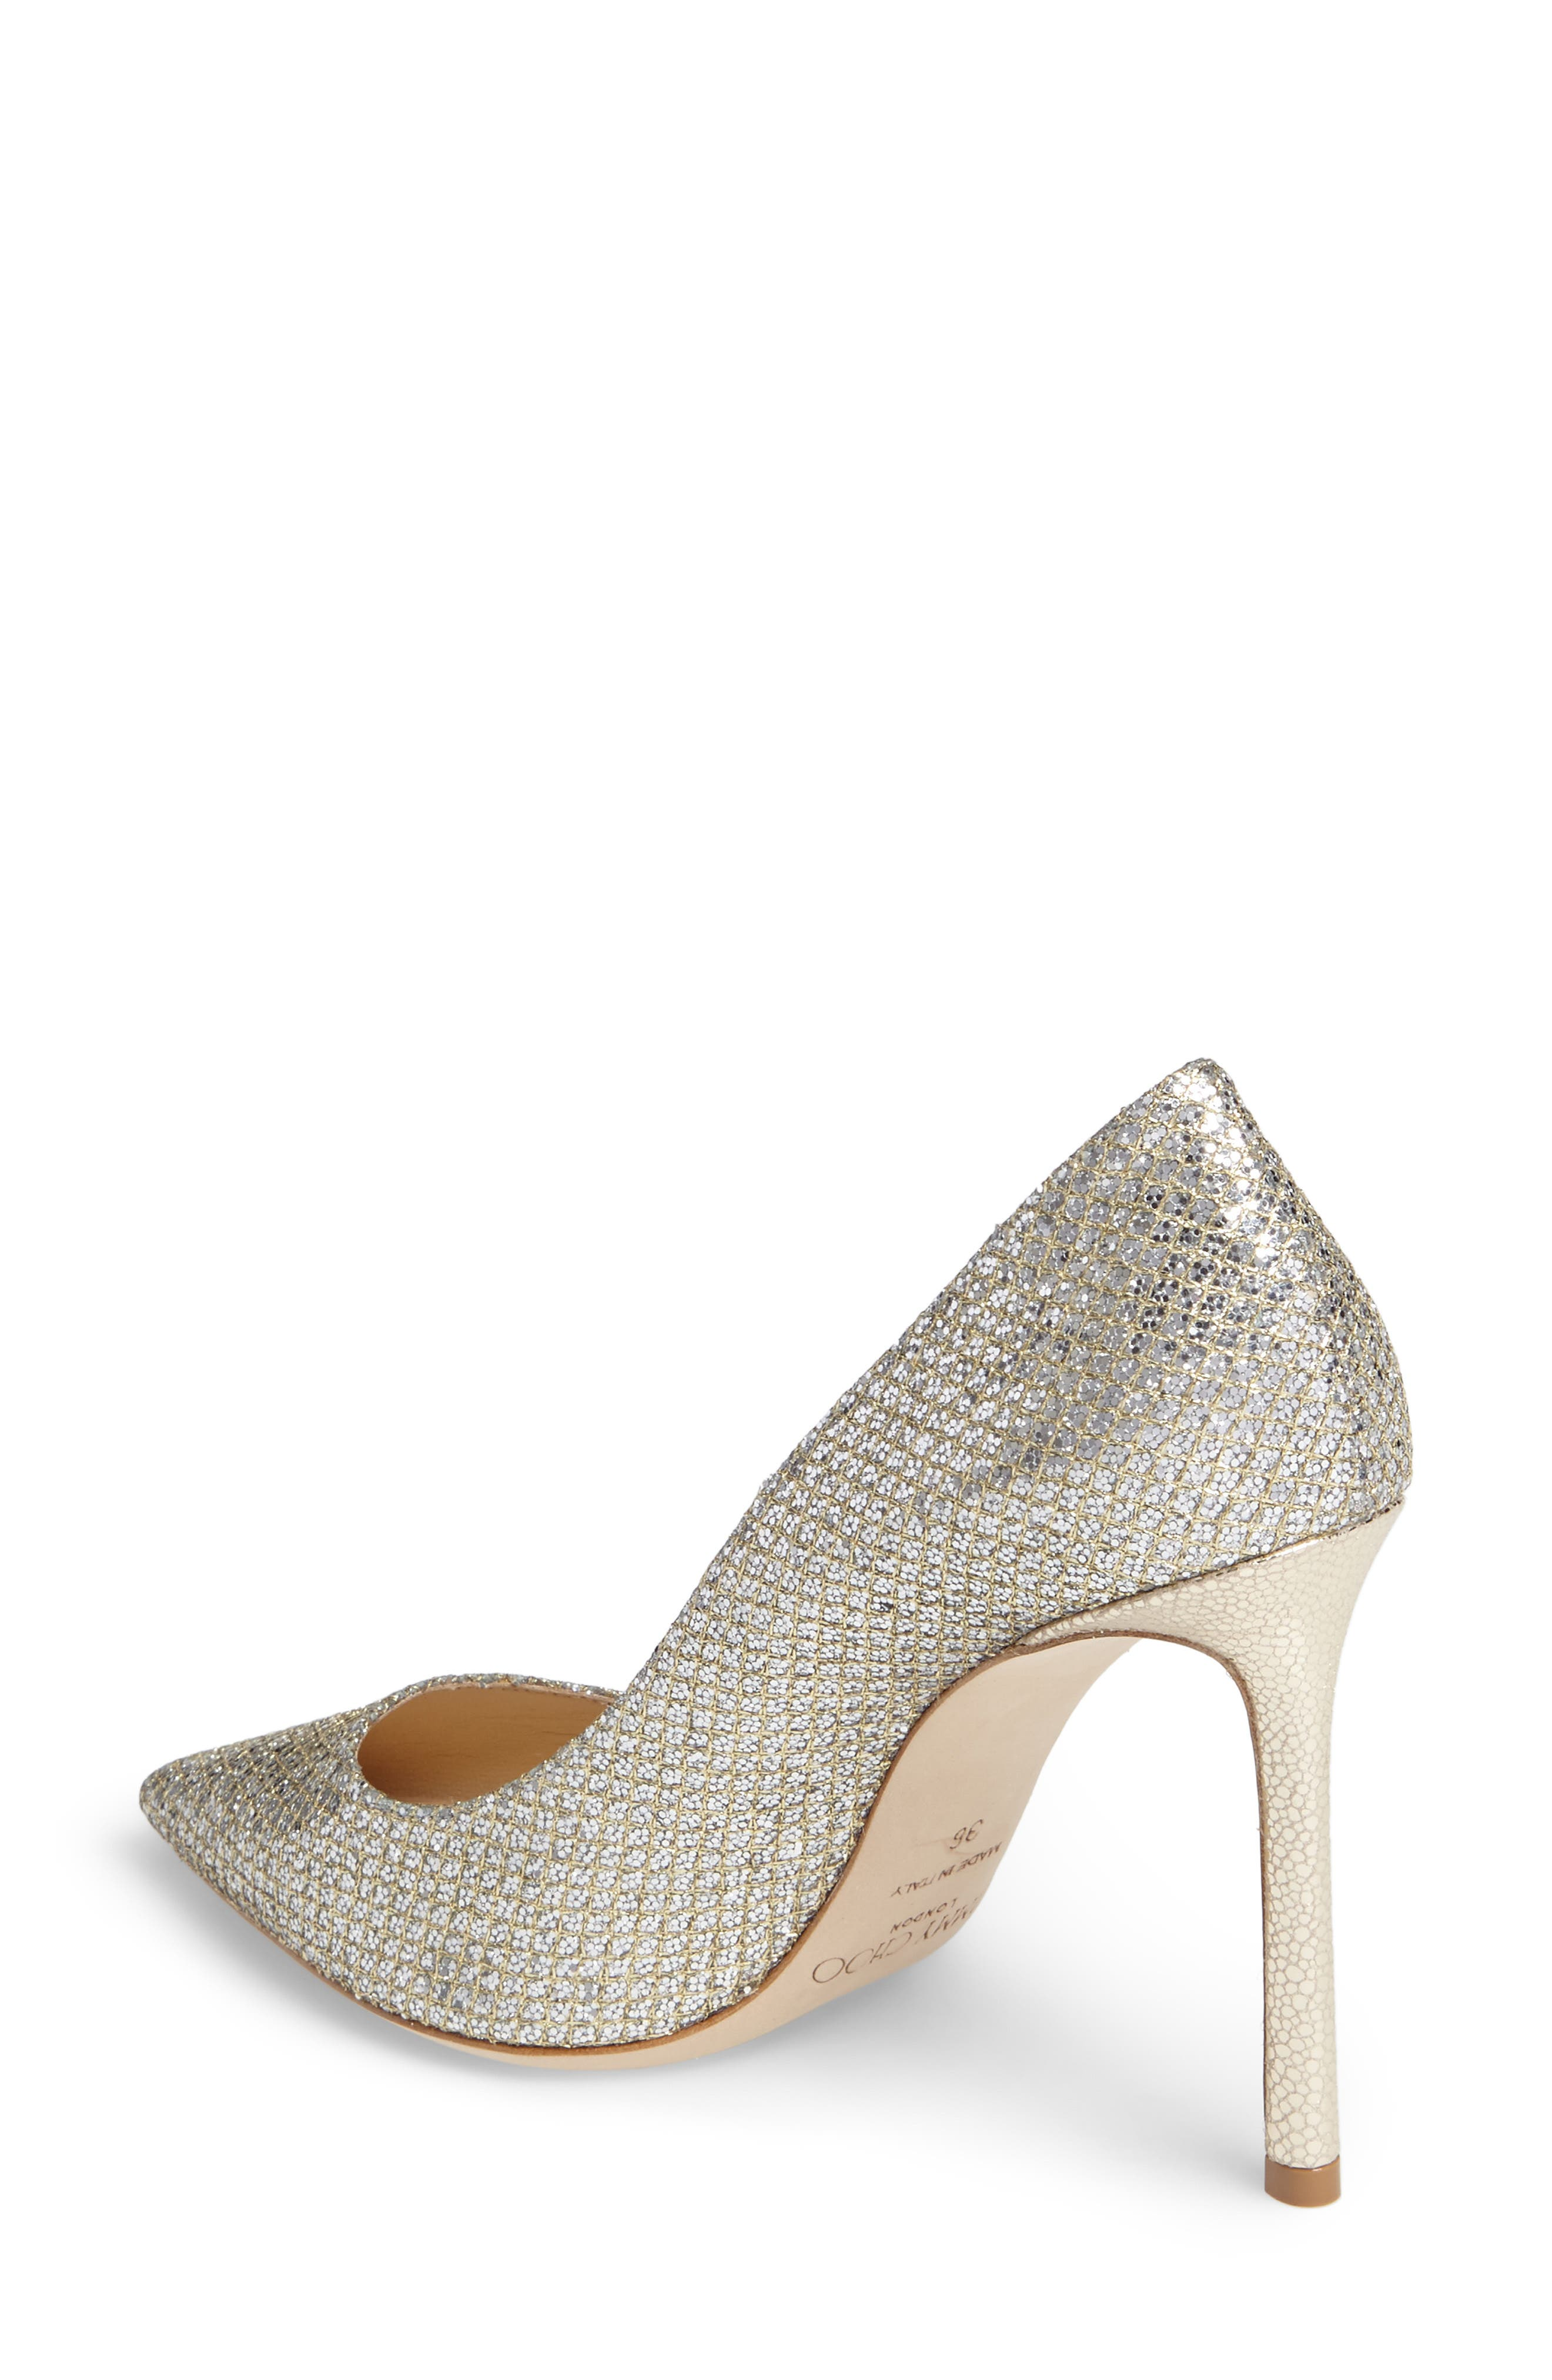 Romy Pointy Toe Pump,                             Alternate thumbnail 2, color,                             CHAMPAGNE